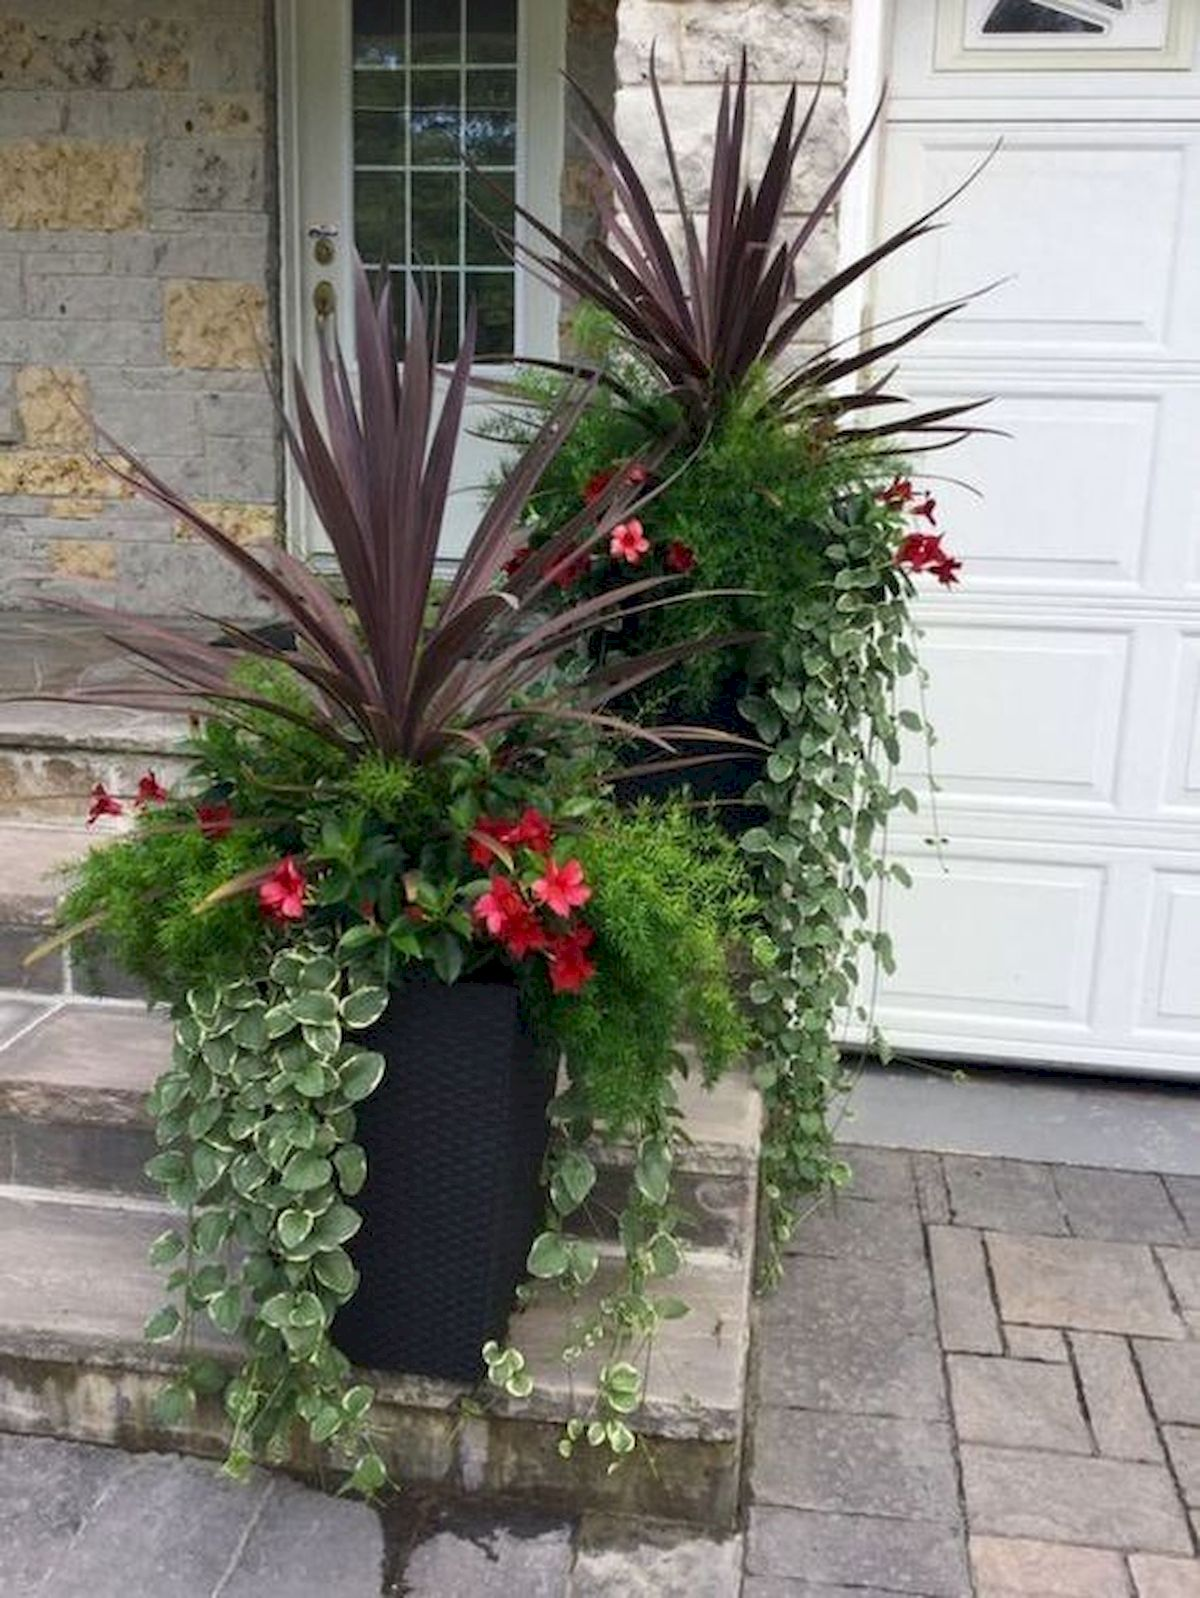 20 Awesome Planter Ideas for Your Front Porch (1)